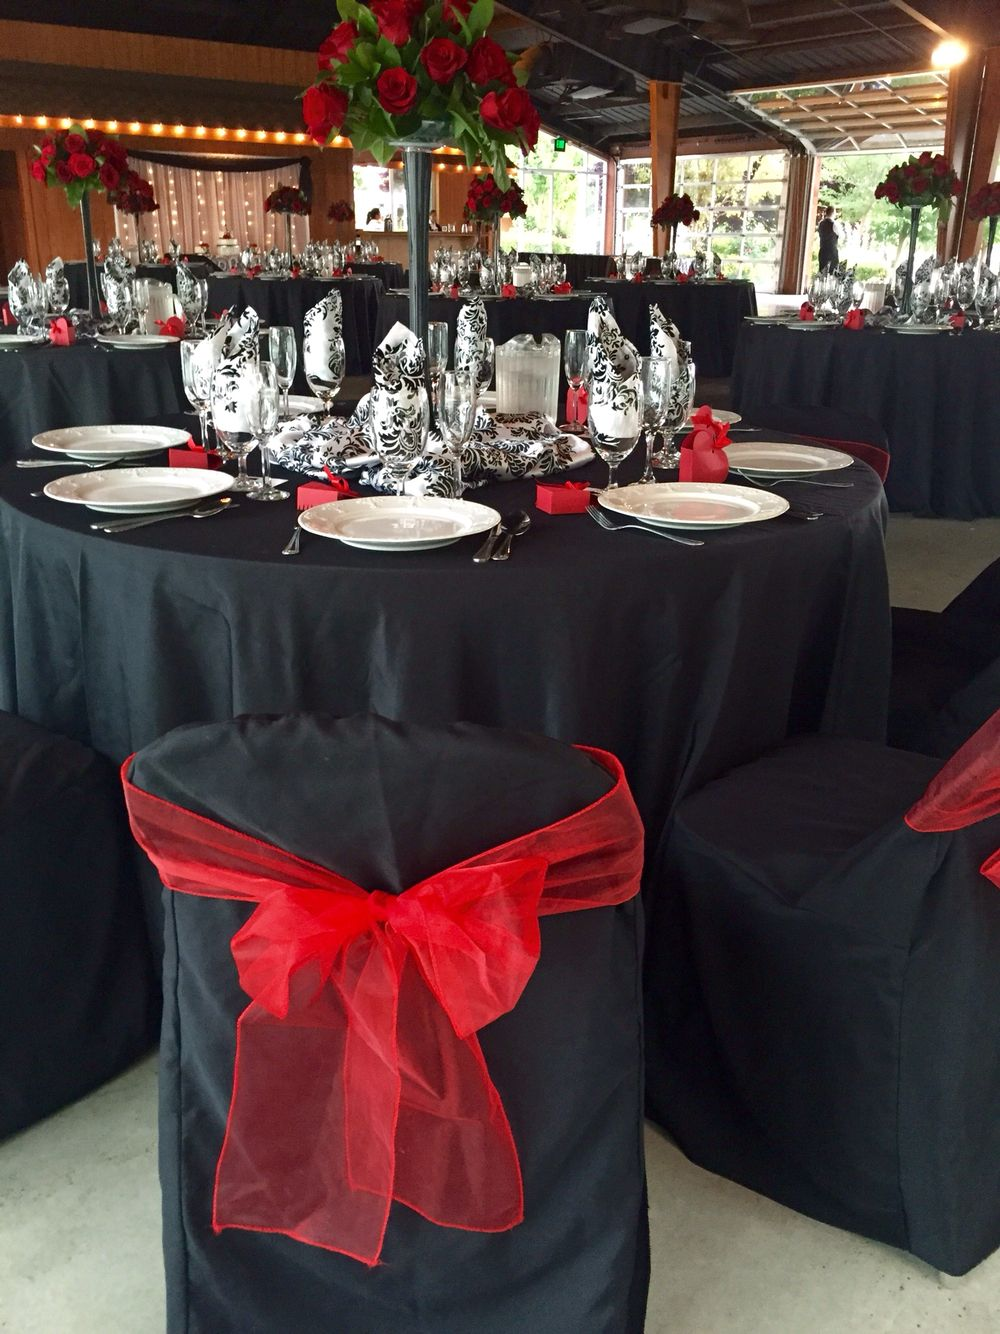 Black Table Cloth Damask Satin Overlay Bunched In Middle Of Red Chair Bow